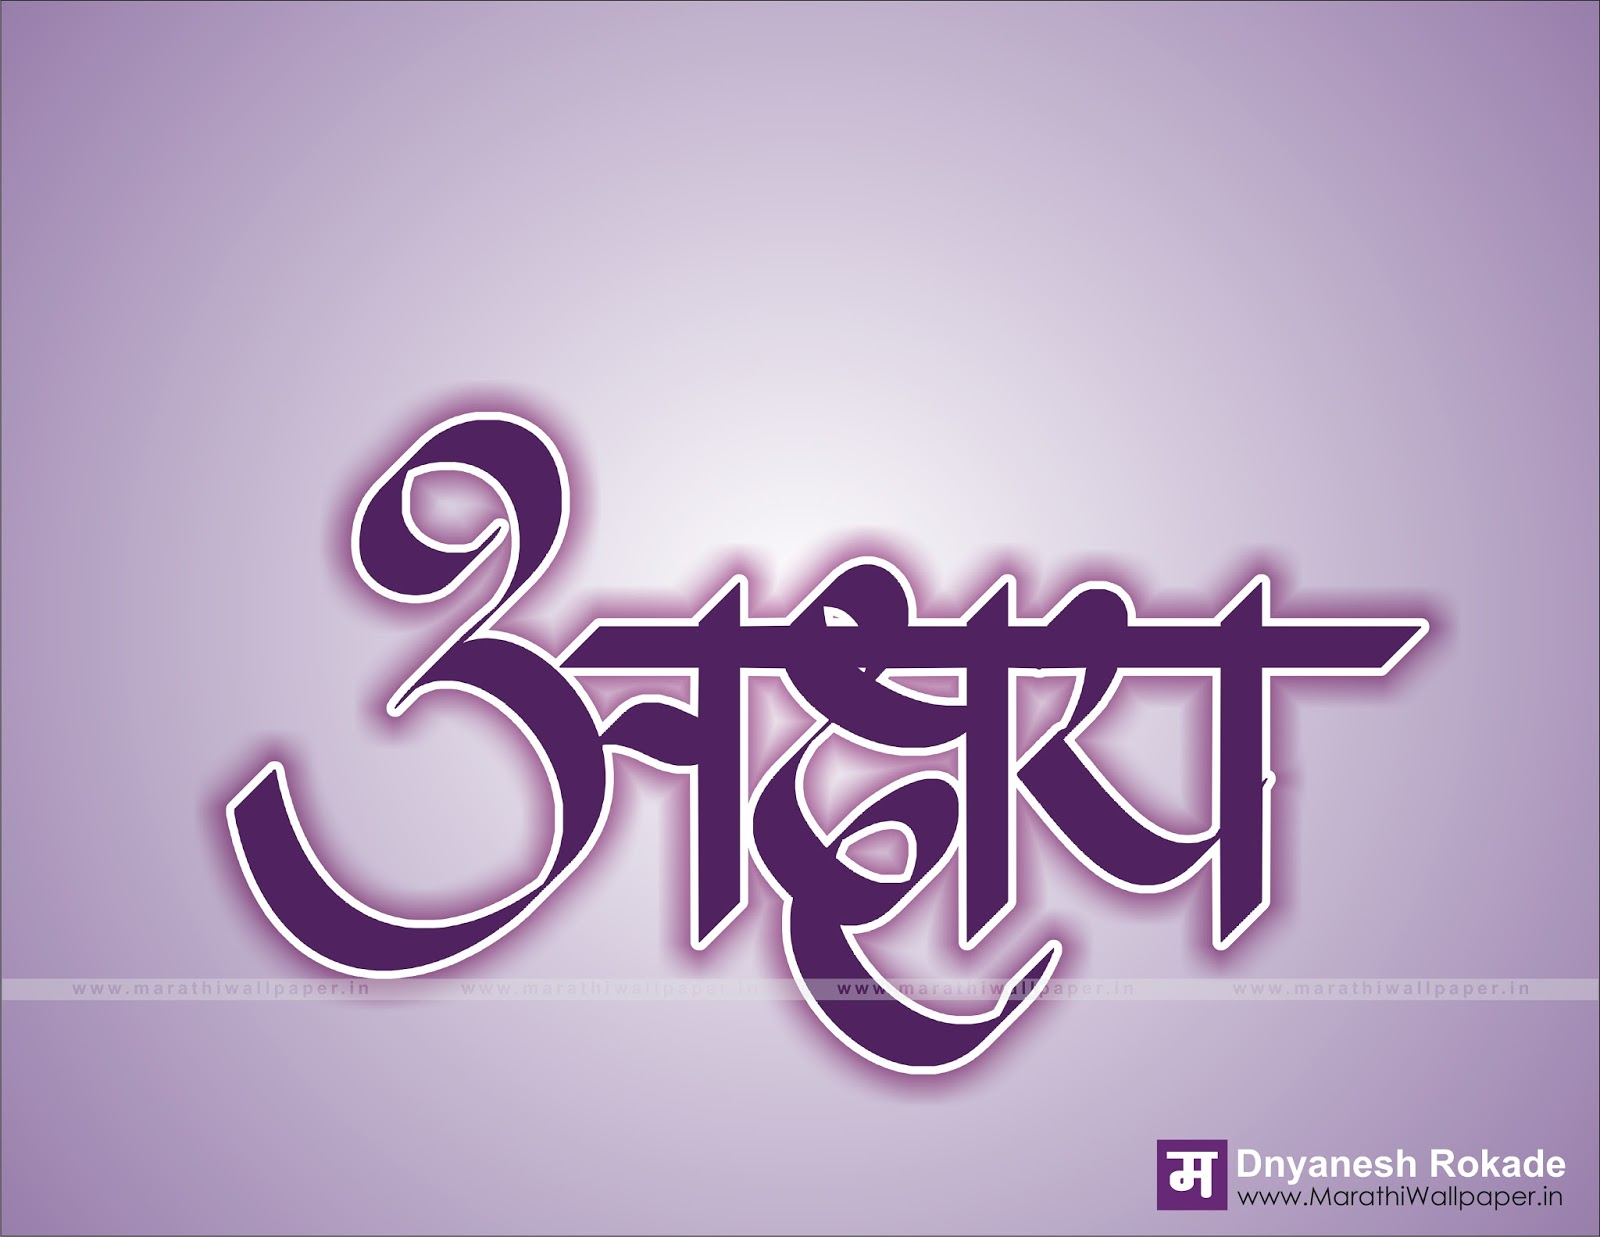 Akshay name wallpaper marathi calligraphy dnyanesh